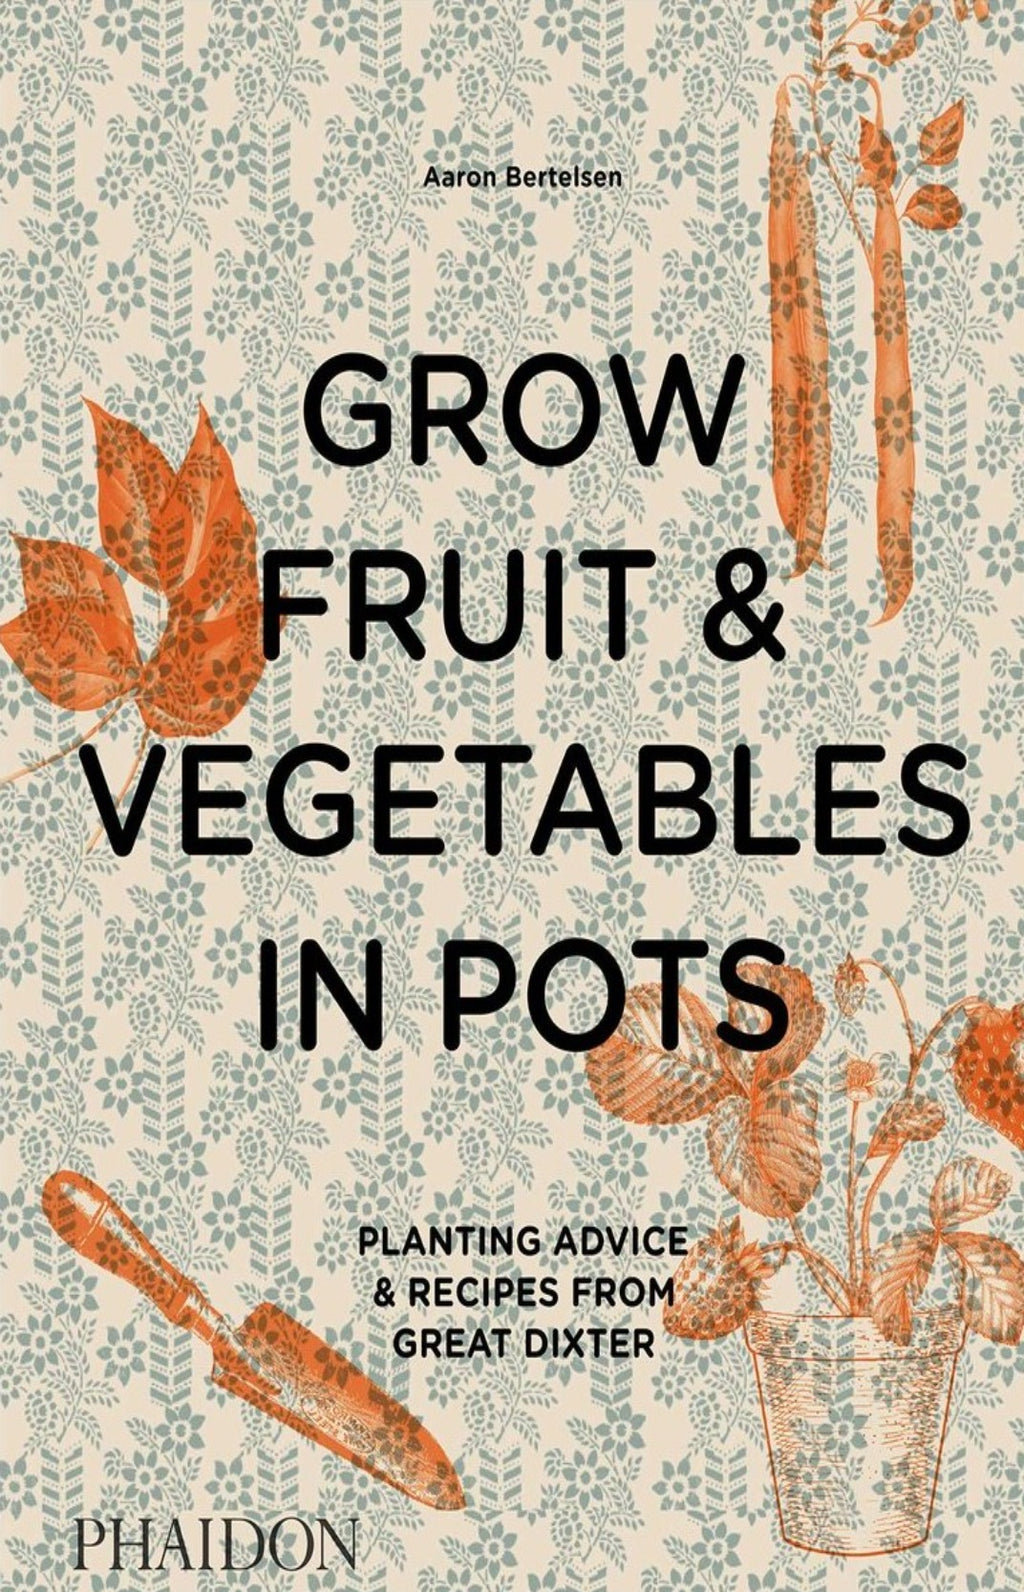 Grow Fruit & Vegetables in Pots : Planting Advice & Recipes from Great Dixter